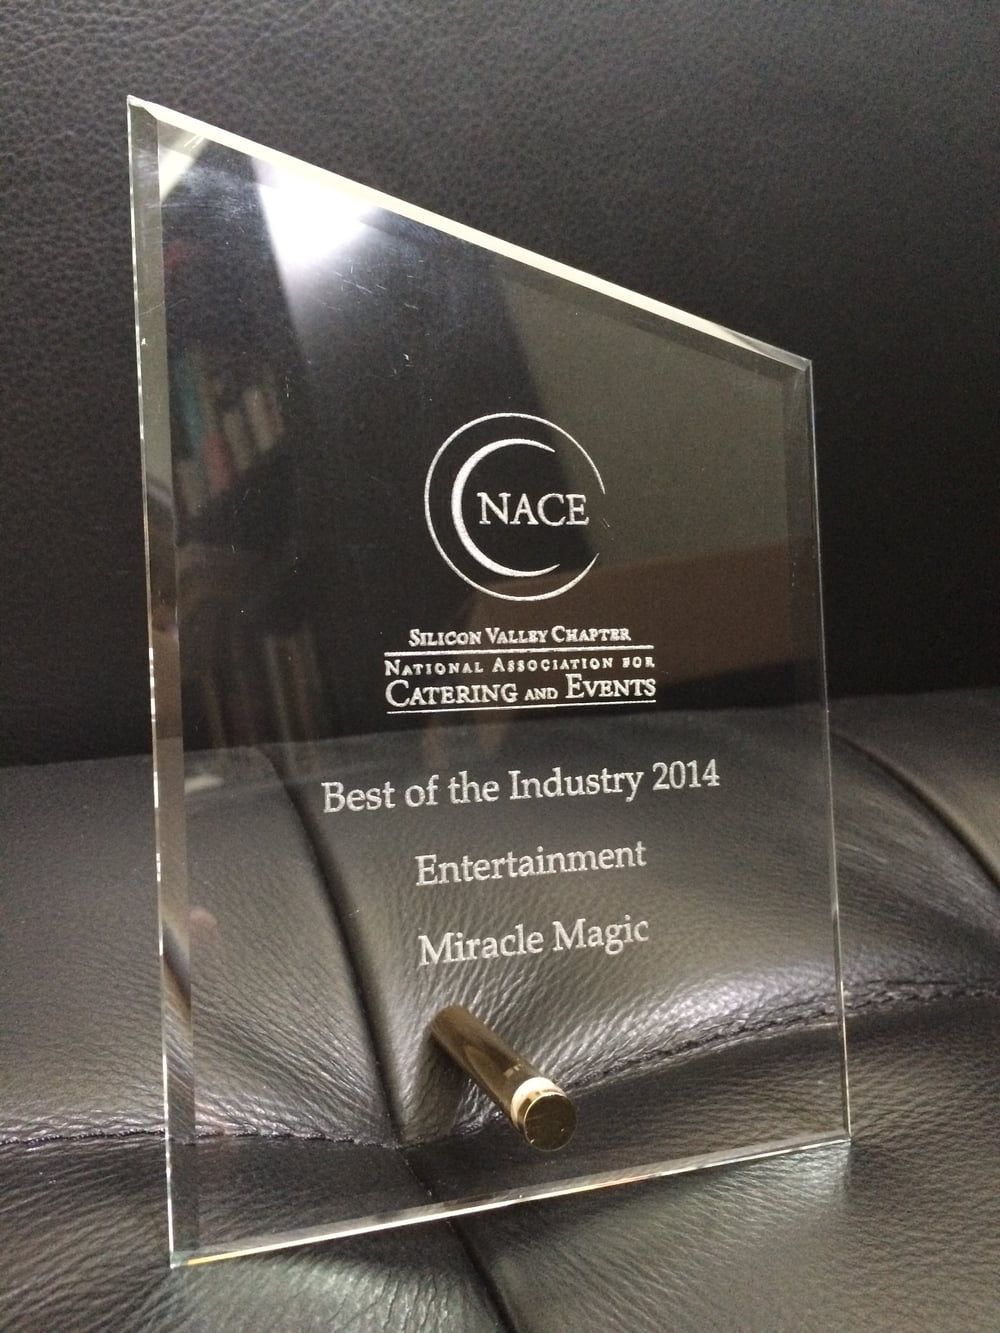 "Thrilled to be recognized as the  ""Best of the Industry""  for Entertainment by the Silicon Valley Chapter of the National Association for Catering and Events. Back when my company was known as Miracle Magic Entertainment."